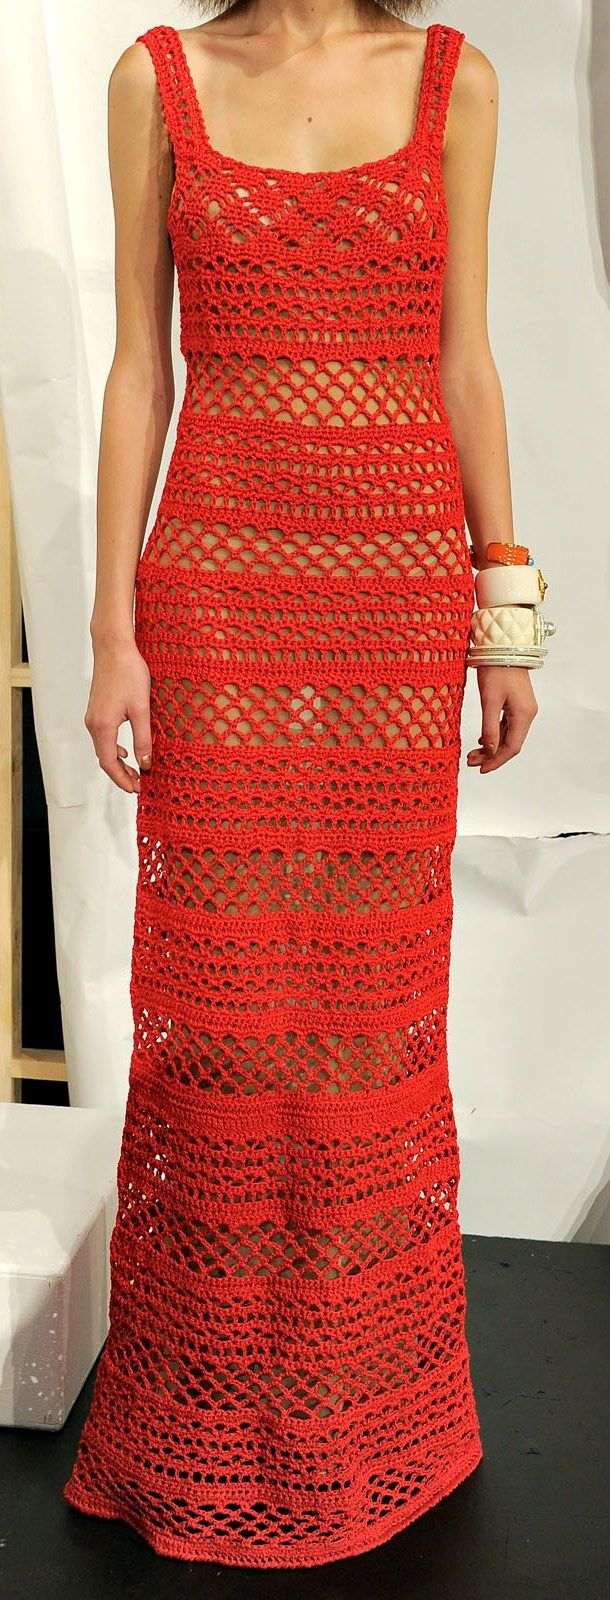 Red lacy maxi dress free crochet graph pattern se puede hacer tan